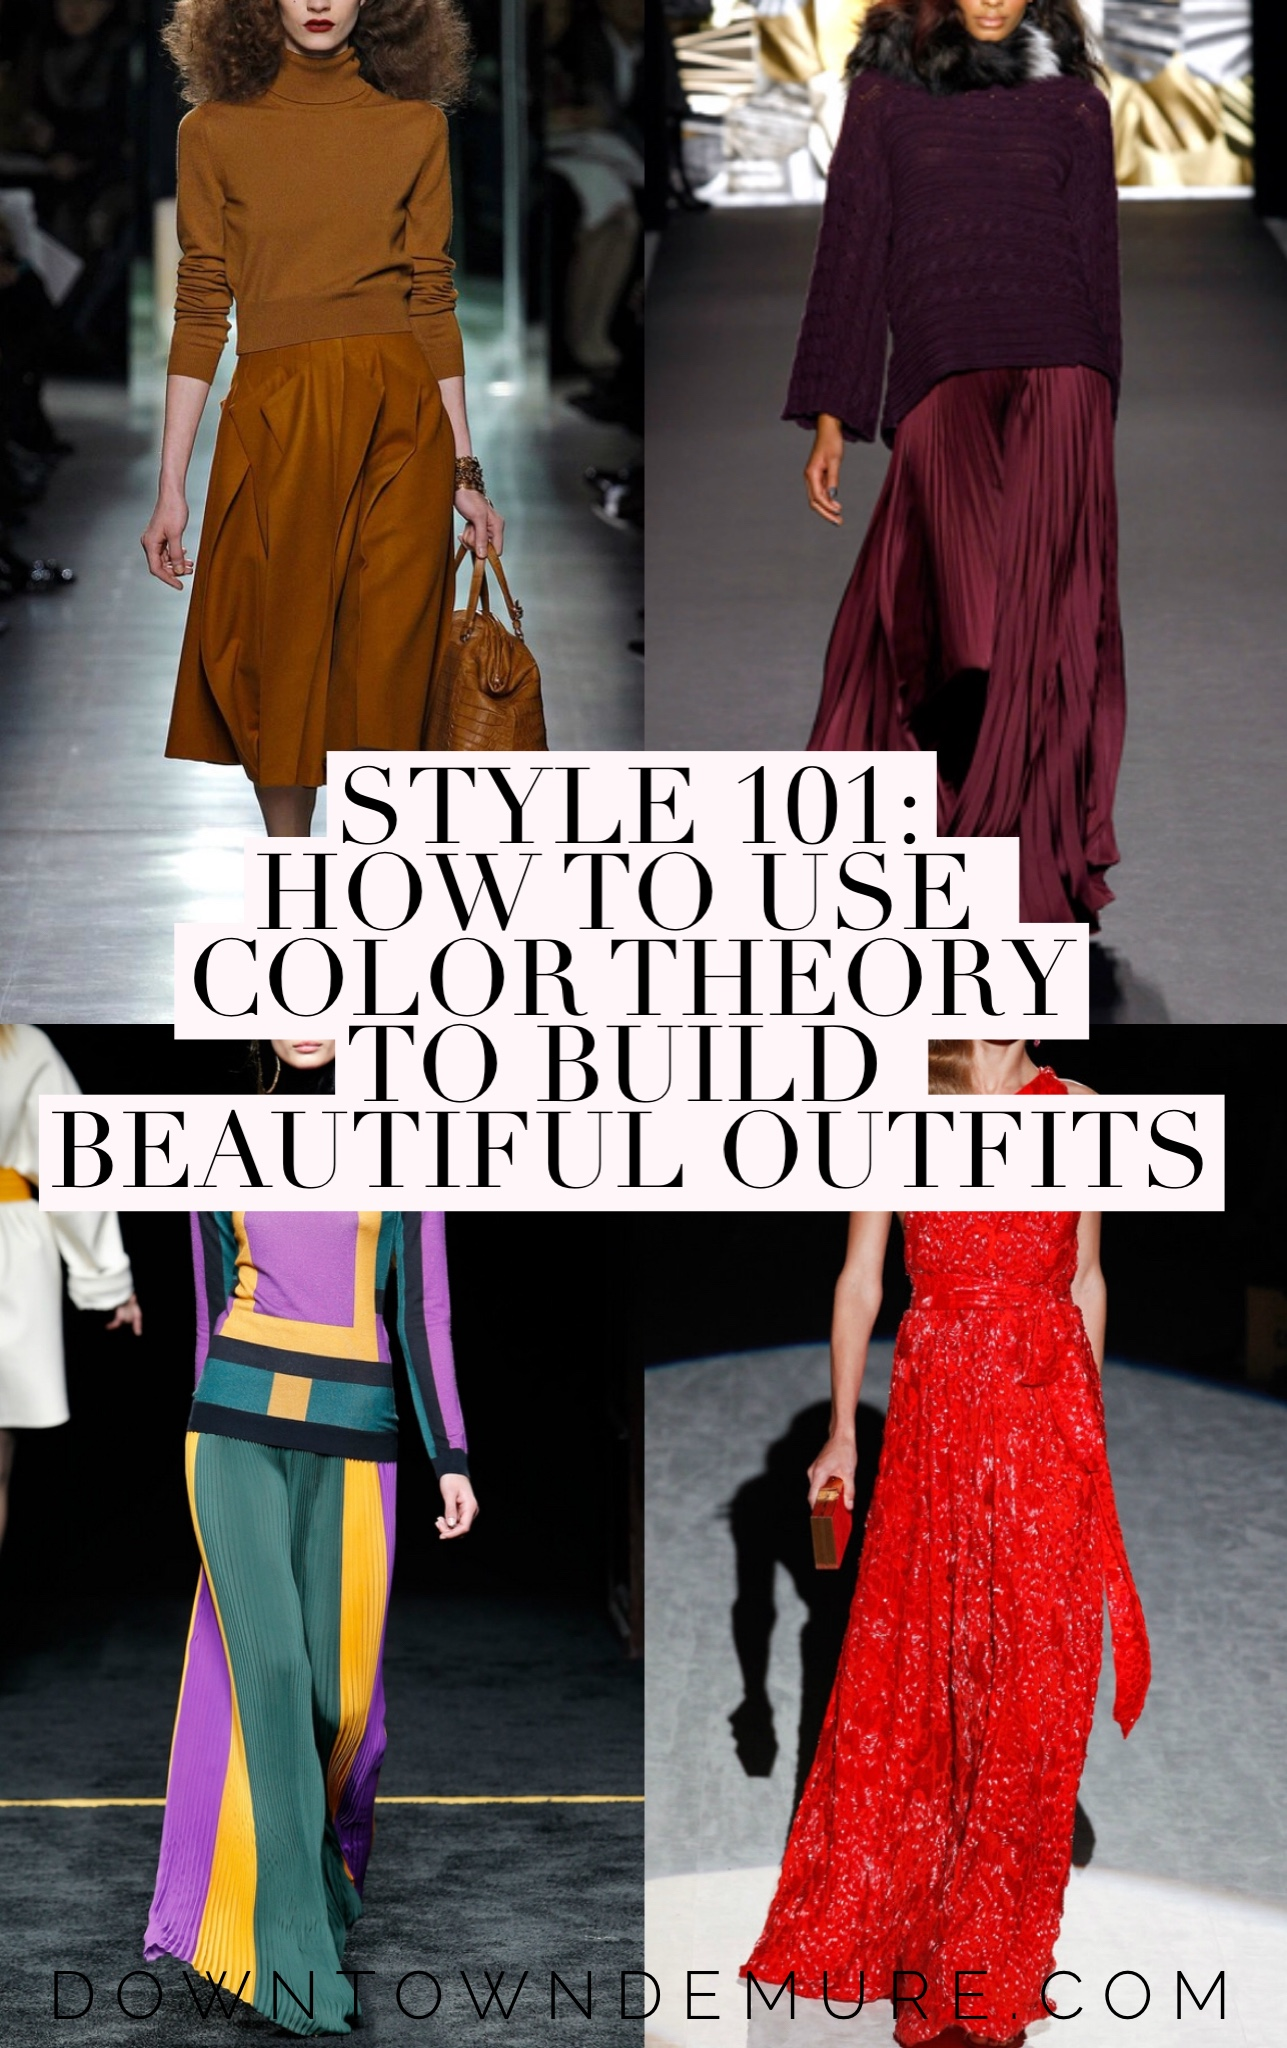 Style 101: How to Use Color Theory to Build Beautiful Outfits